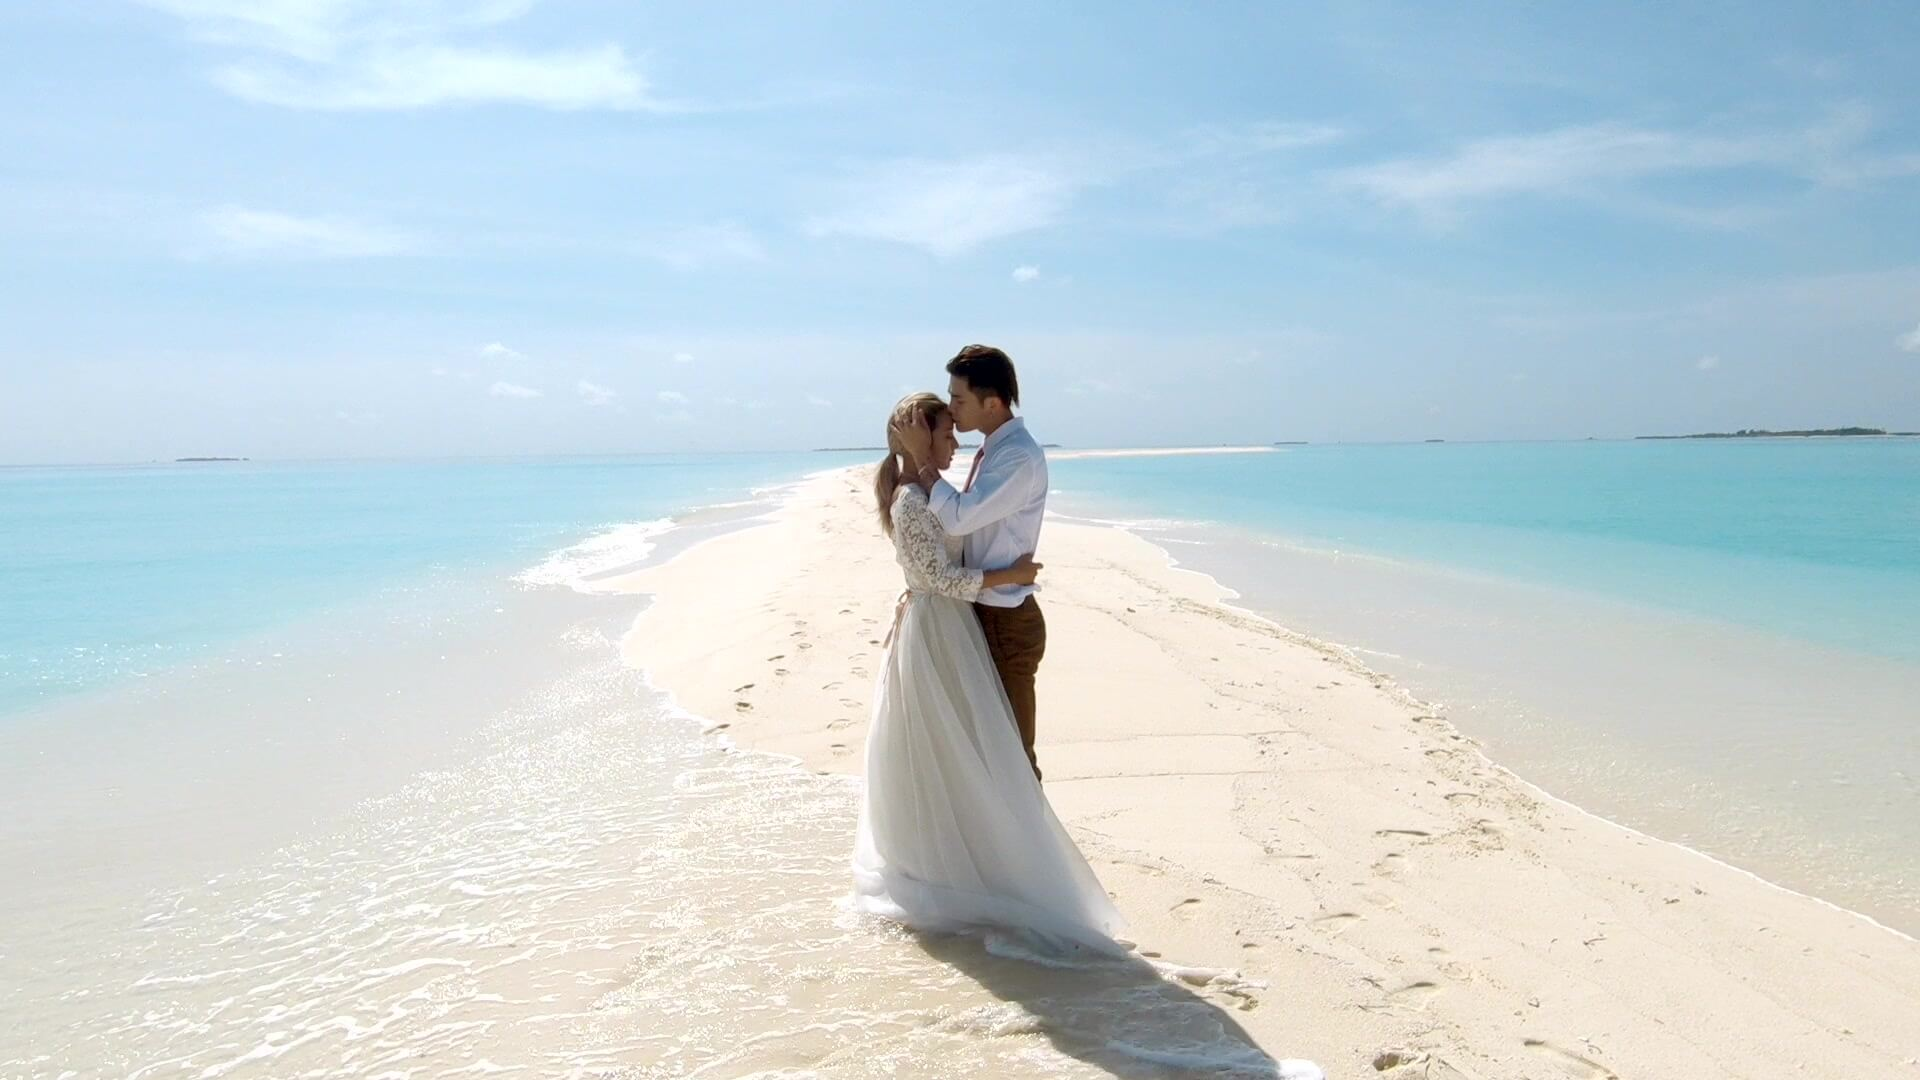 A romantic moment of a wedding couple on sandbank Maldives